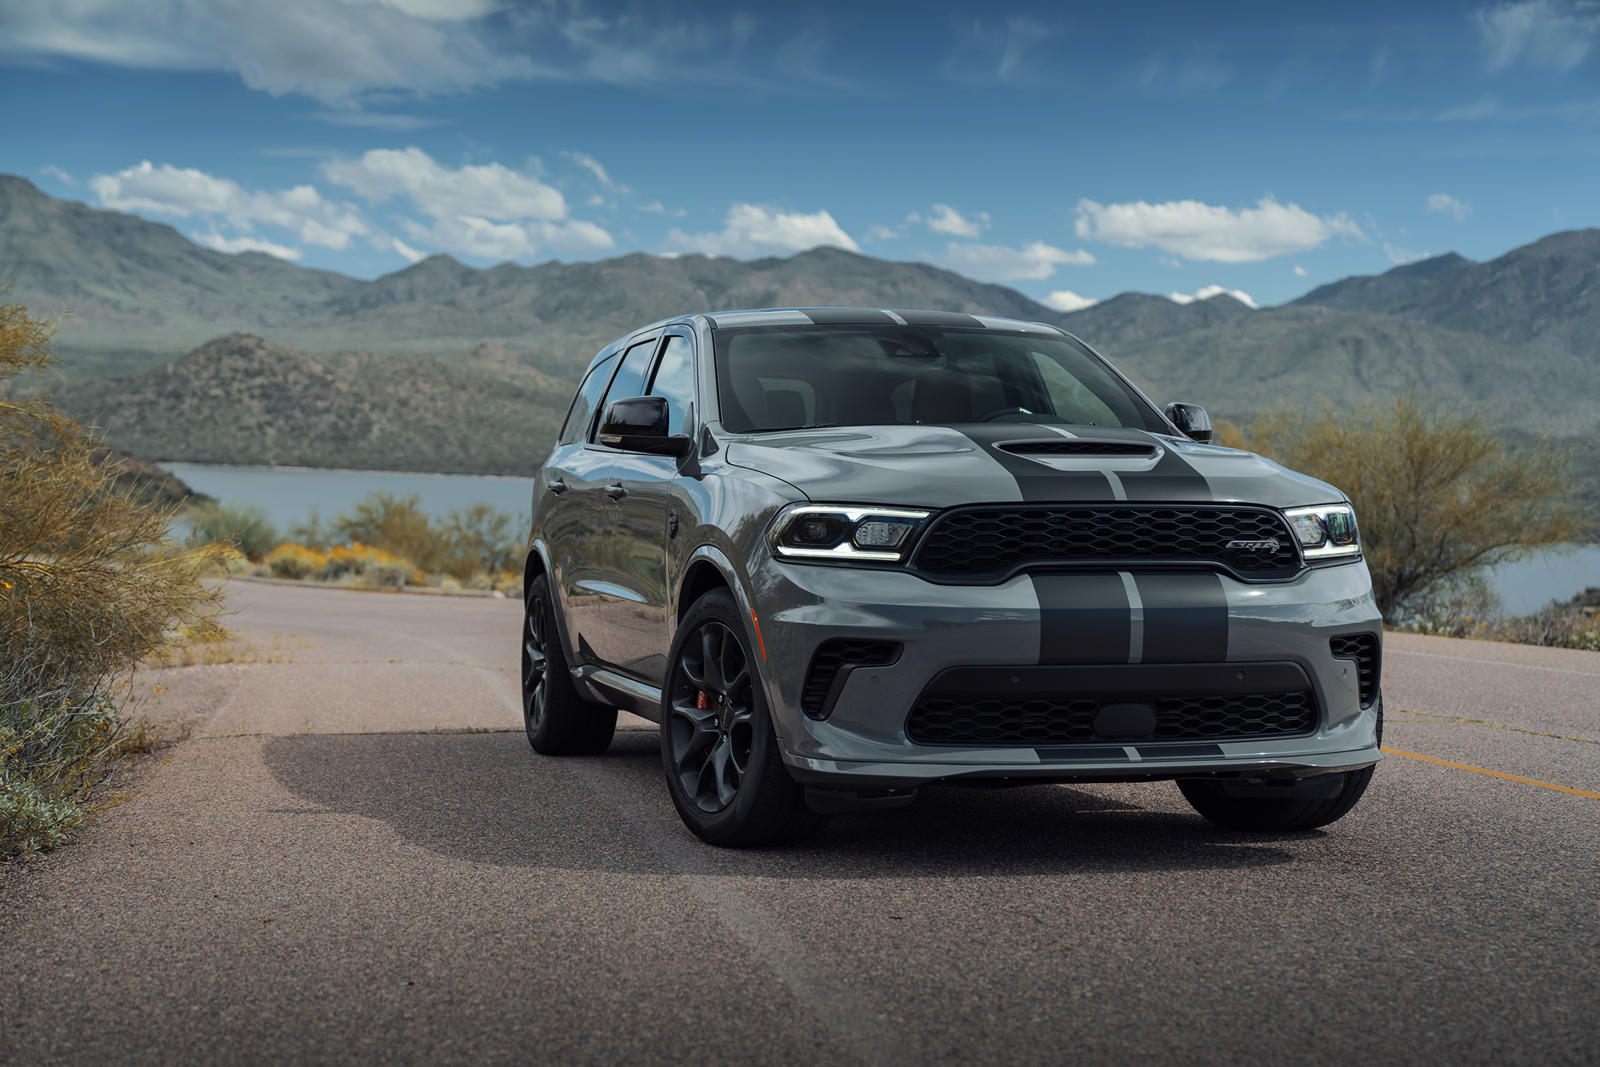 2021 Dodge Durango SRT Hellcat: Review, Trims, Specs, Price, New Interior Features, Exterior Design, and Specifications